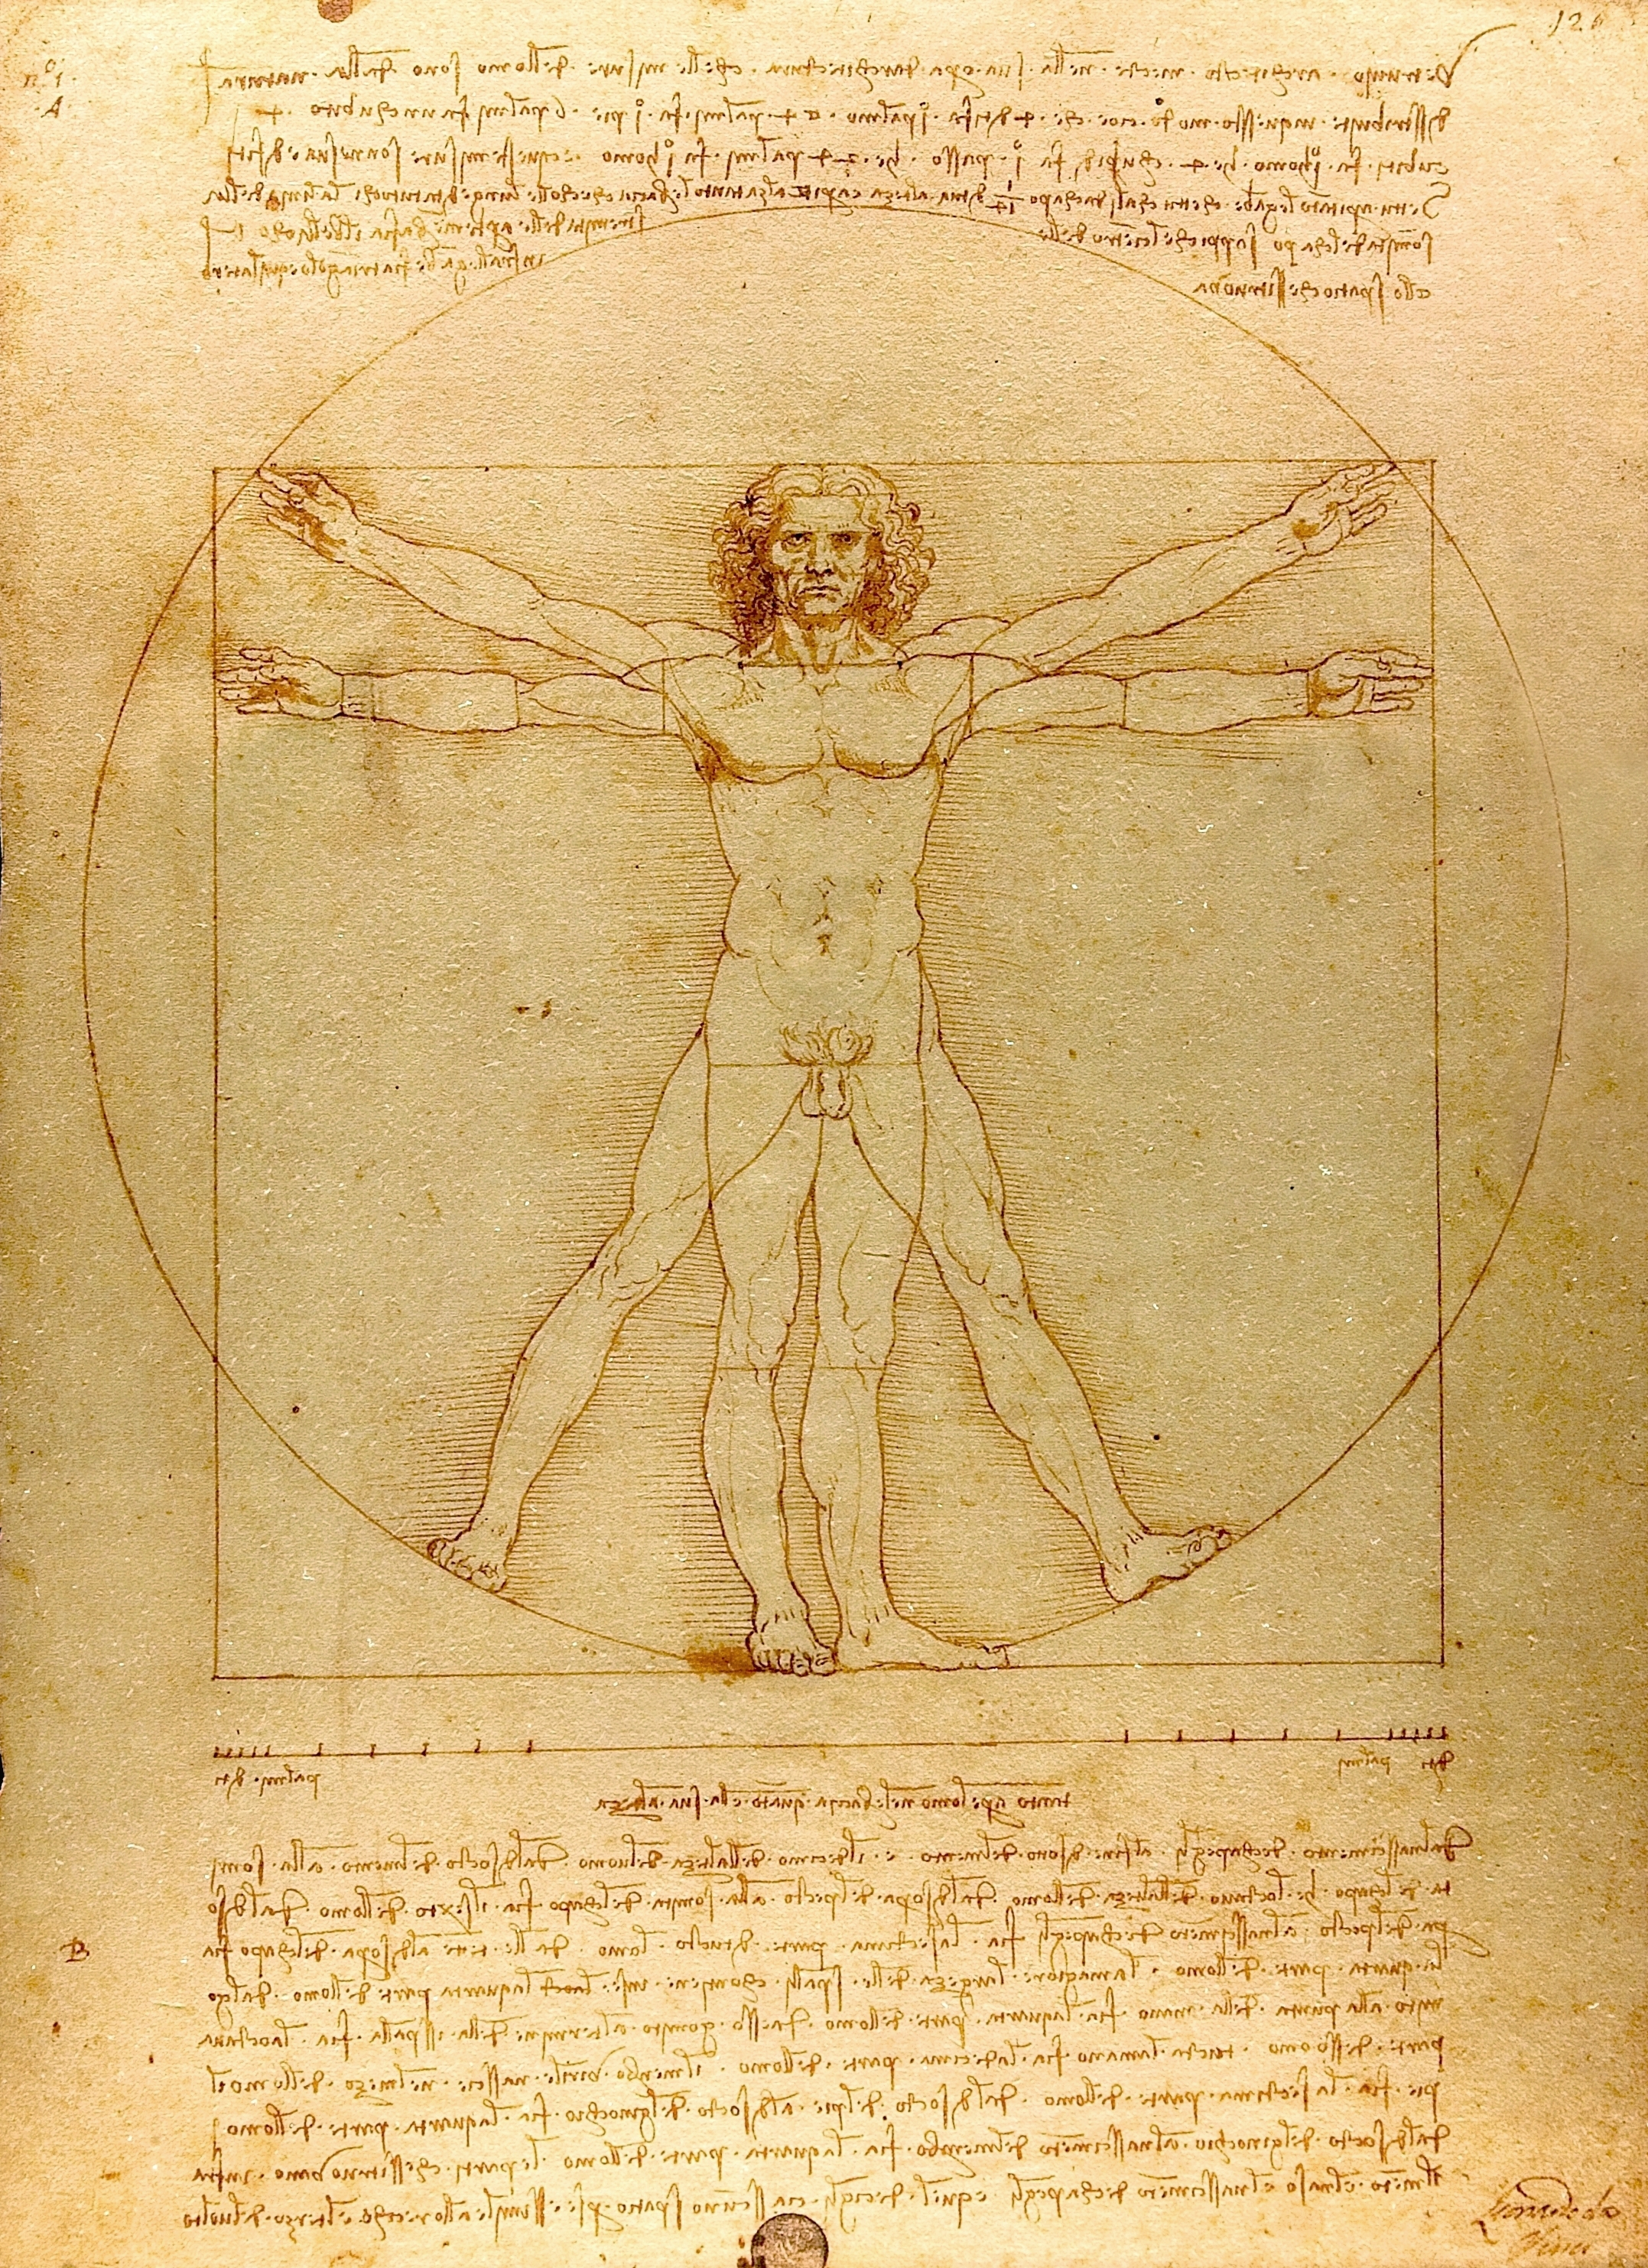 The Vitruvian Man by Leonardo da Vinci, ink and wash on paper circa1492. Currently in the collections of Gallerie dell'Accademia, Venice, Italy.